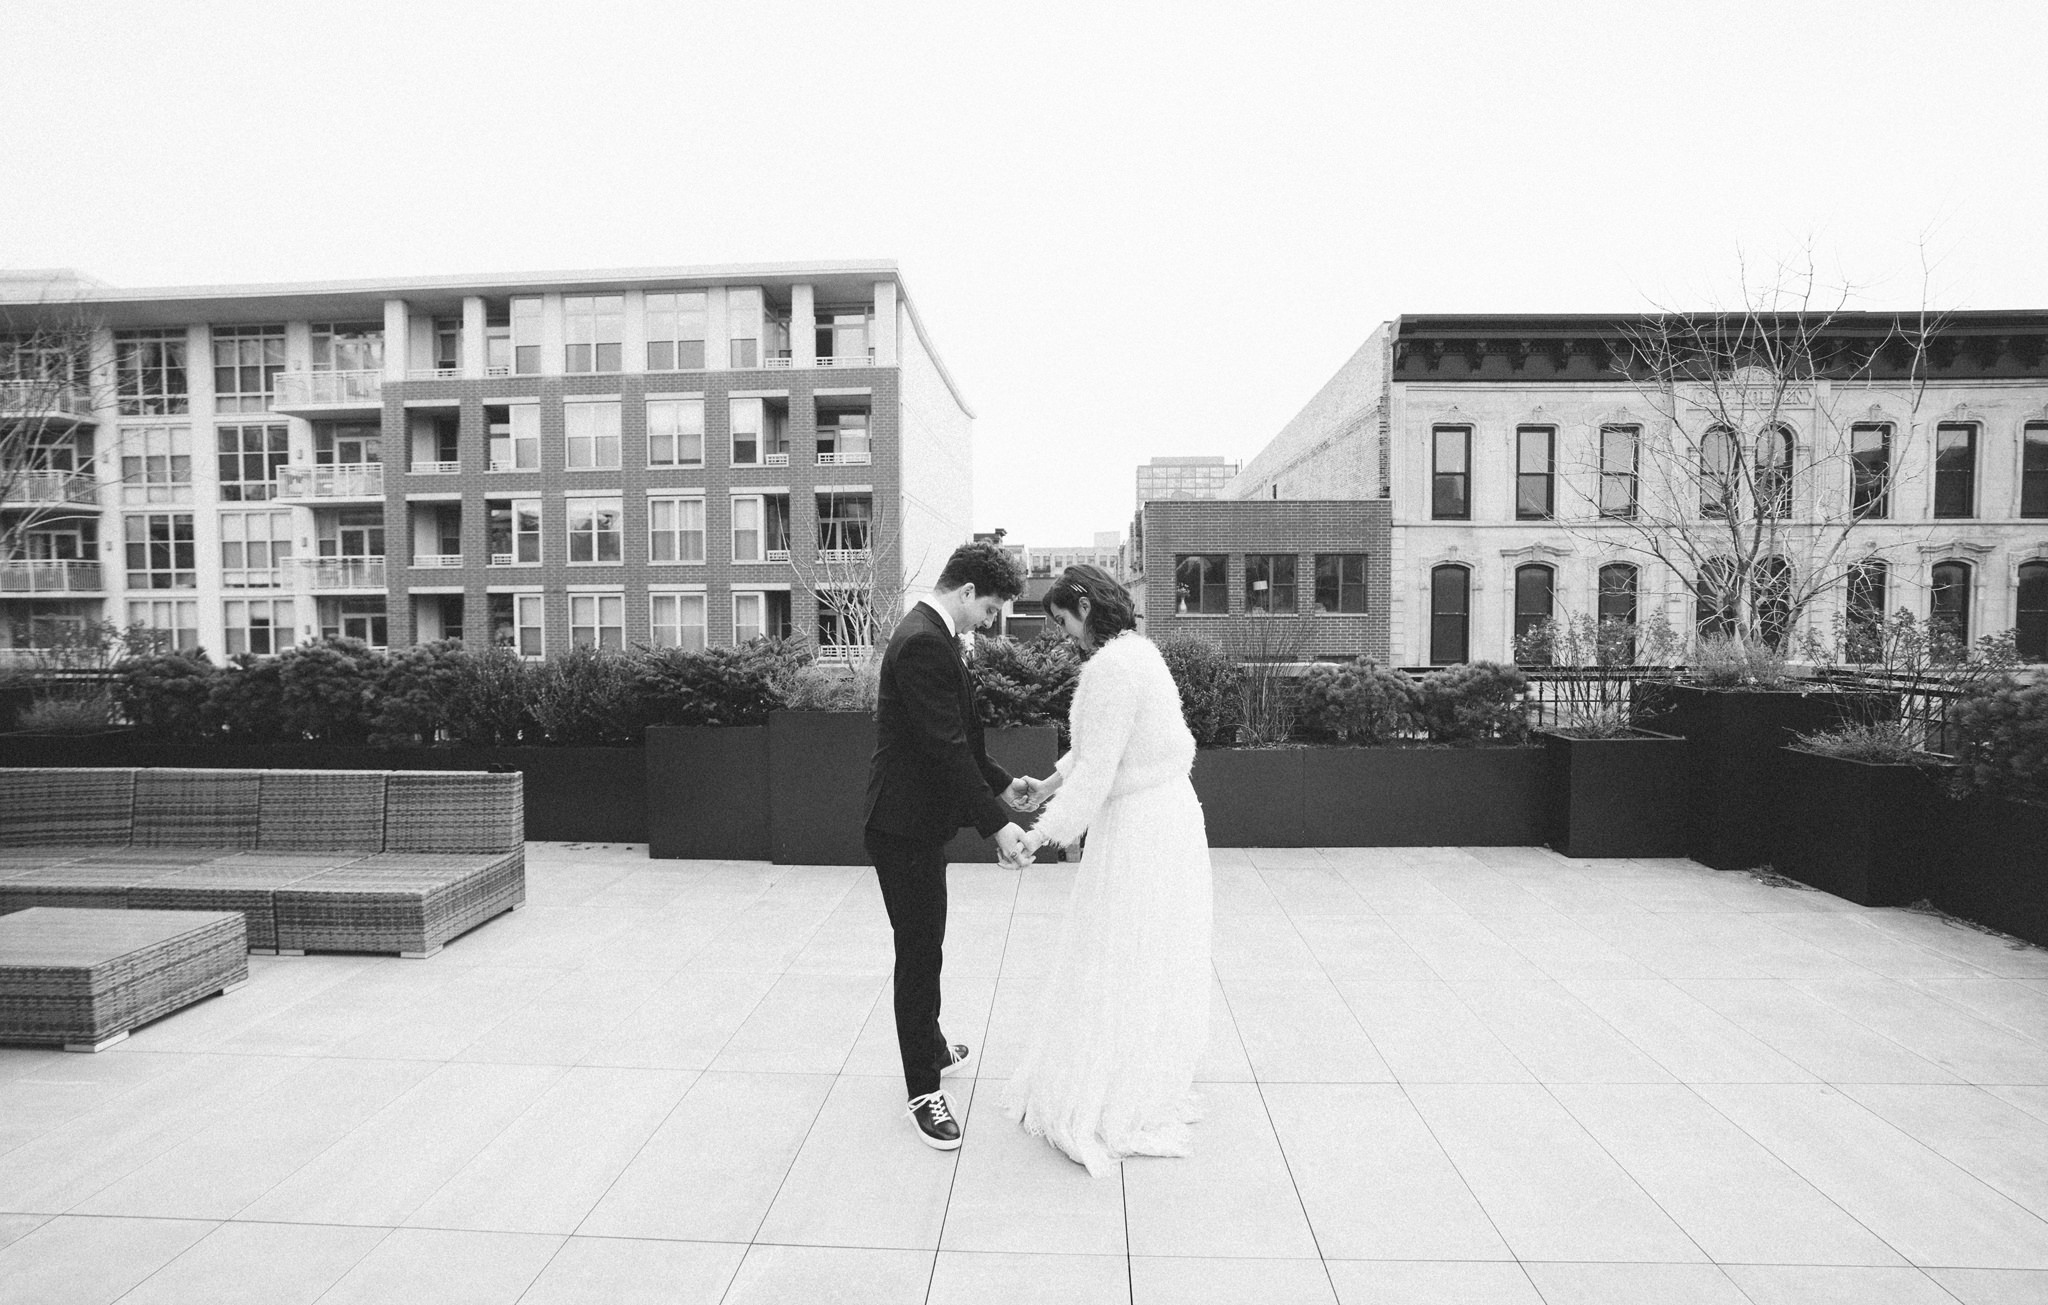 093-rempel-photography-chicago-wedding-inspiration-west-loop-fulton-market-caitlin-max-loft-lucia-venue-lindsey-marino-city-bbq-dana-hotel-and-spa.jpg